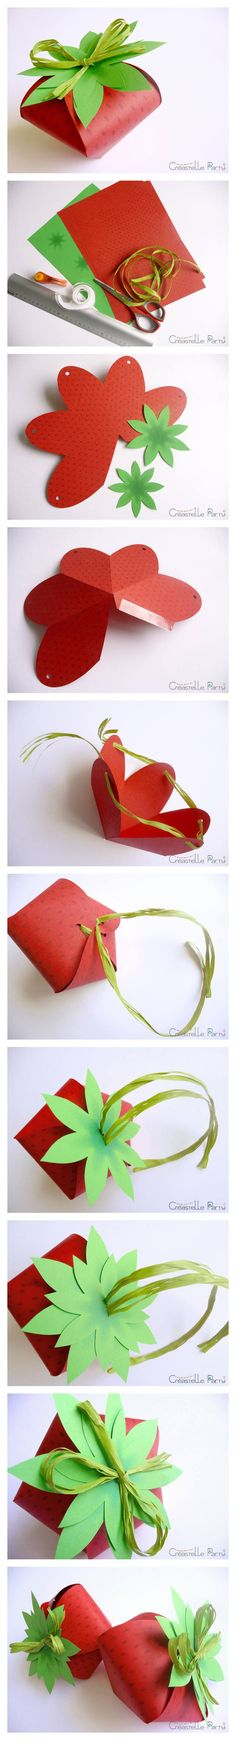 DIY strawberry box. Going to have to try this. Very cute idea!